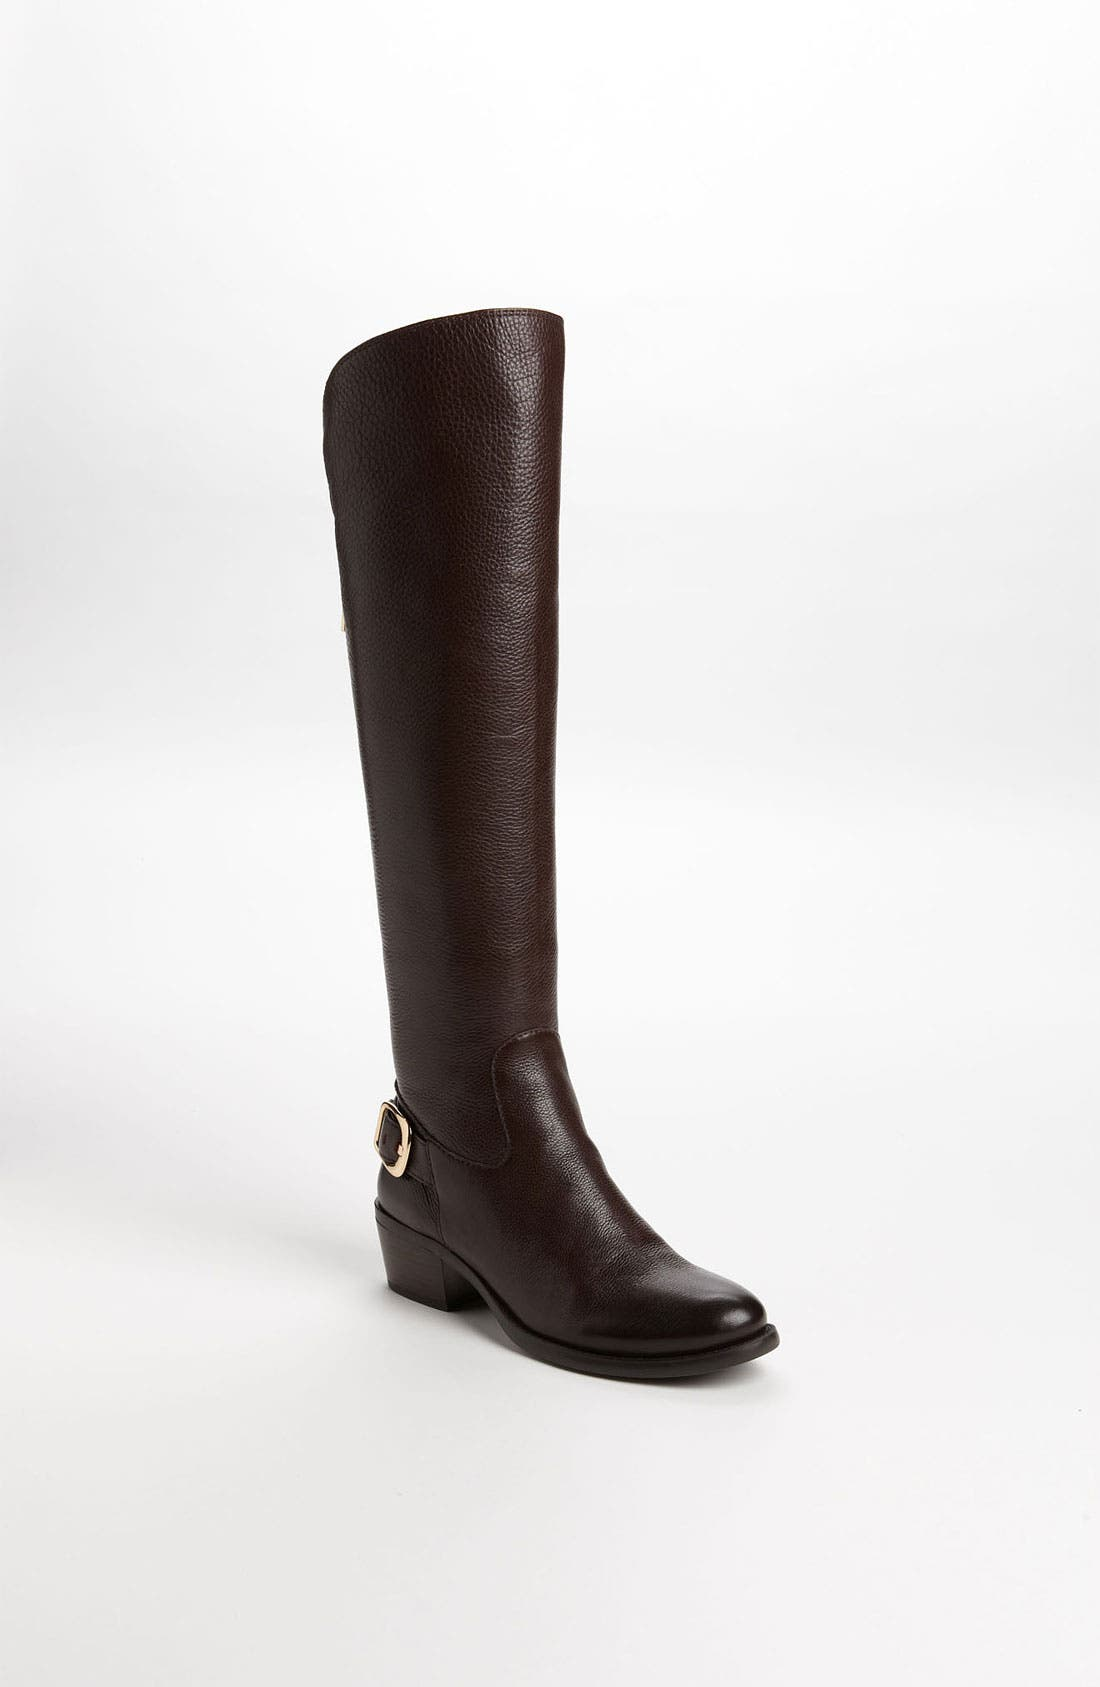 Alternate Image 1 Selected - Vince Camuto 'Beralta' Boot